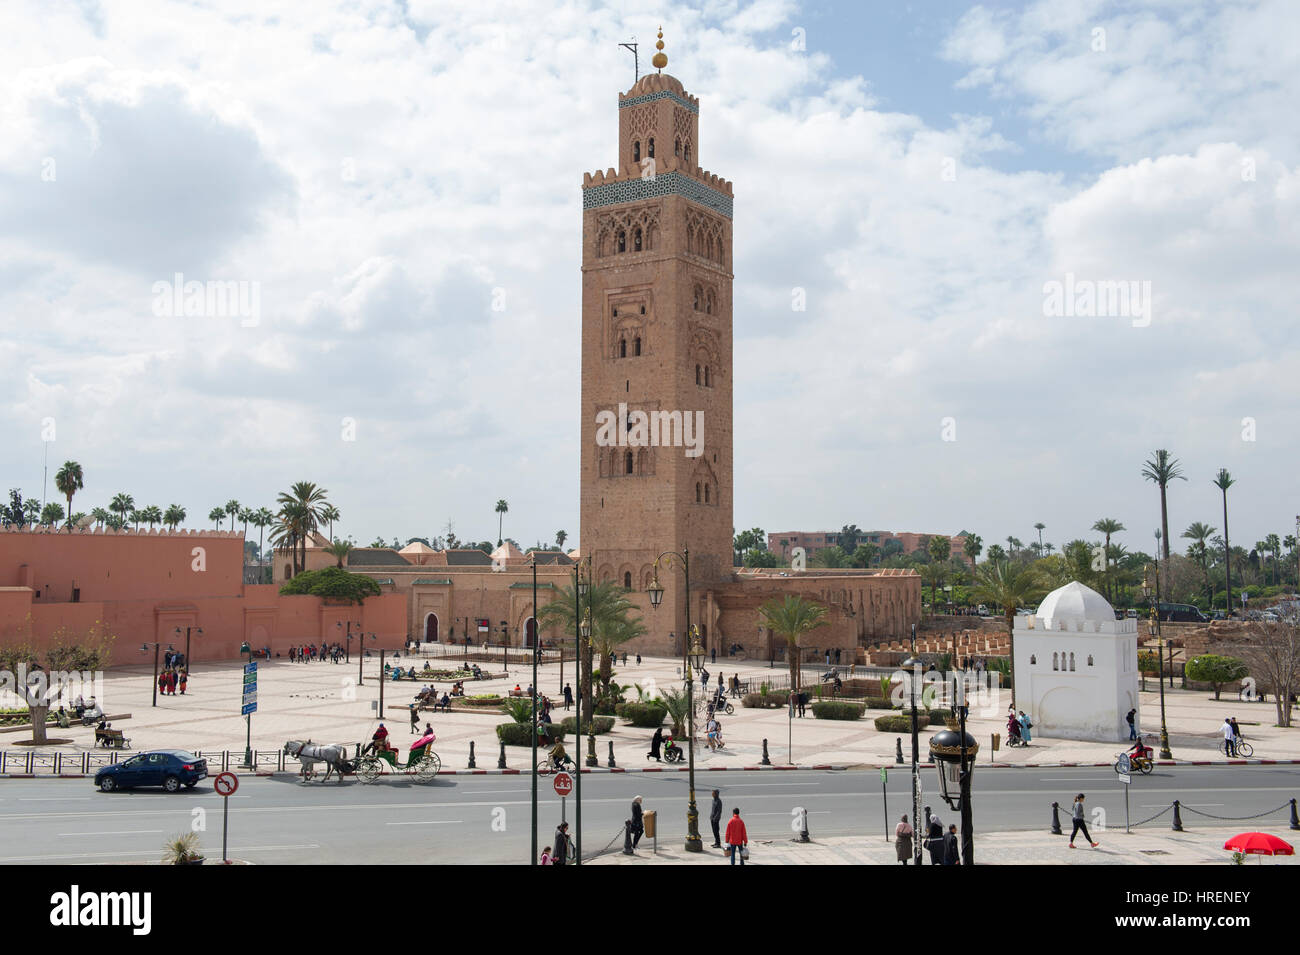 The Koutoubia Mosque near Jemaa el-Fnaa central square in Marrakesh (Marrakech), Morocco Stock Photo